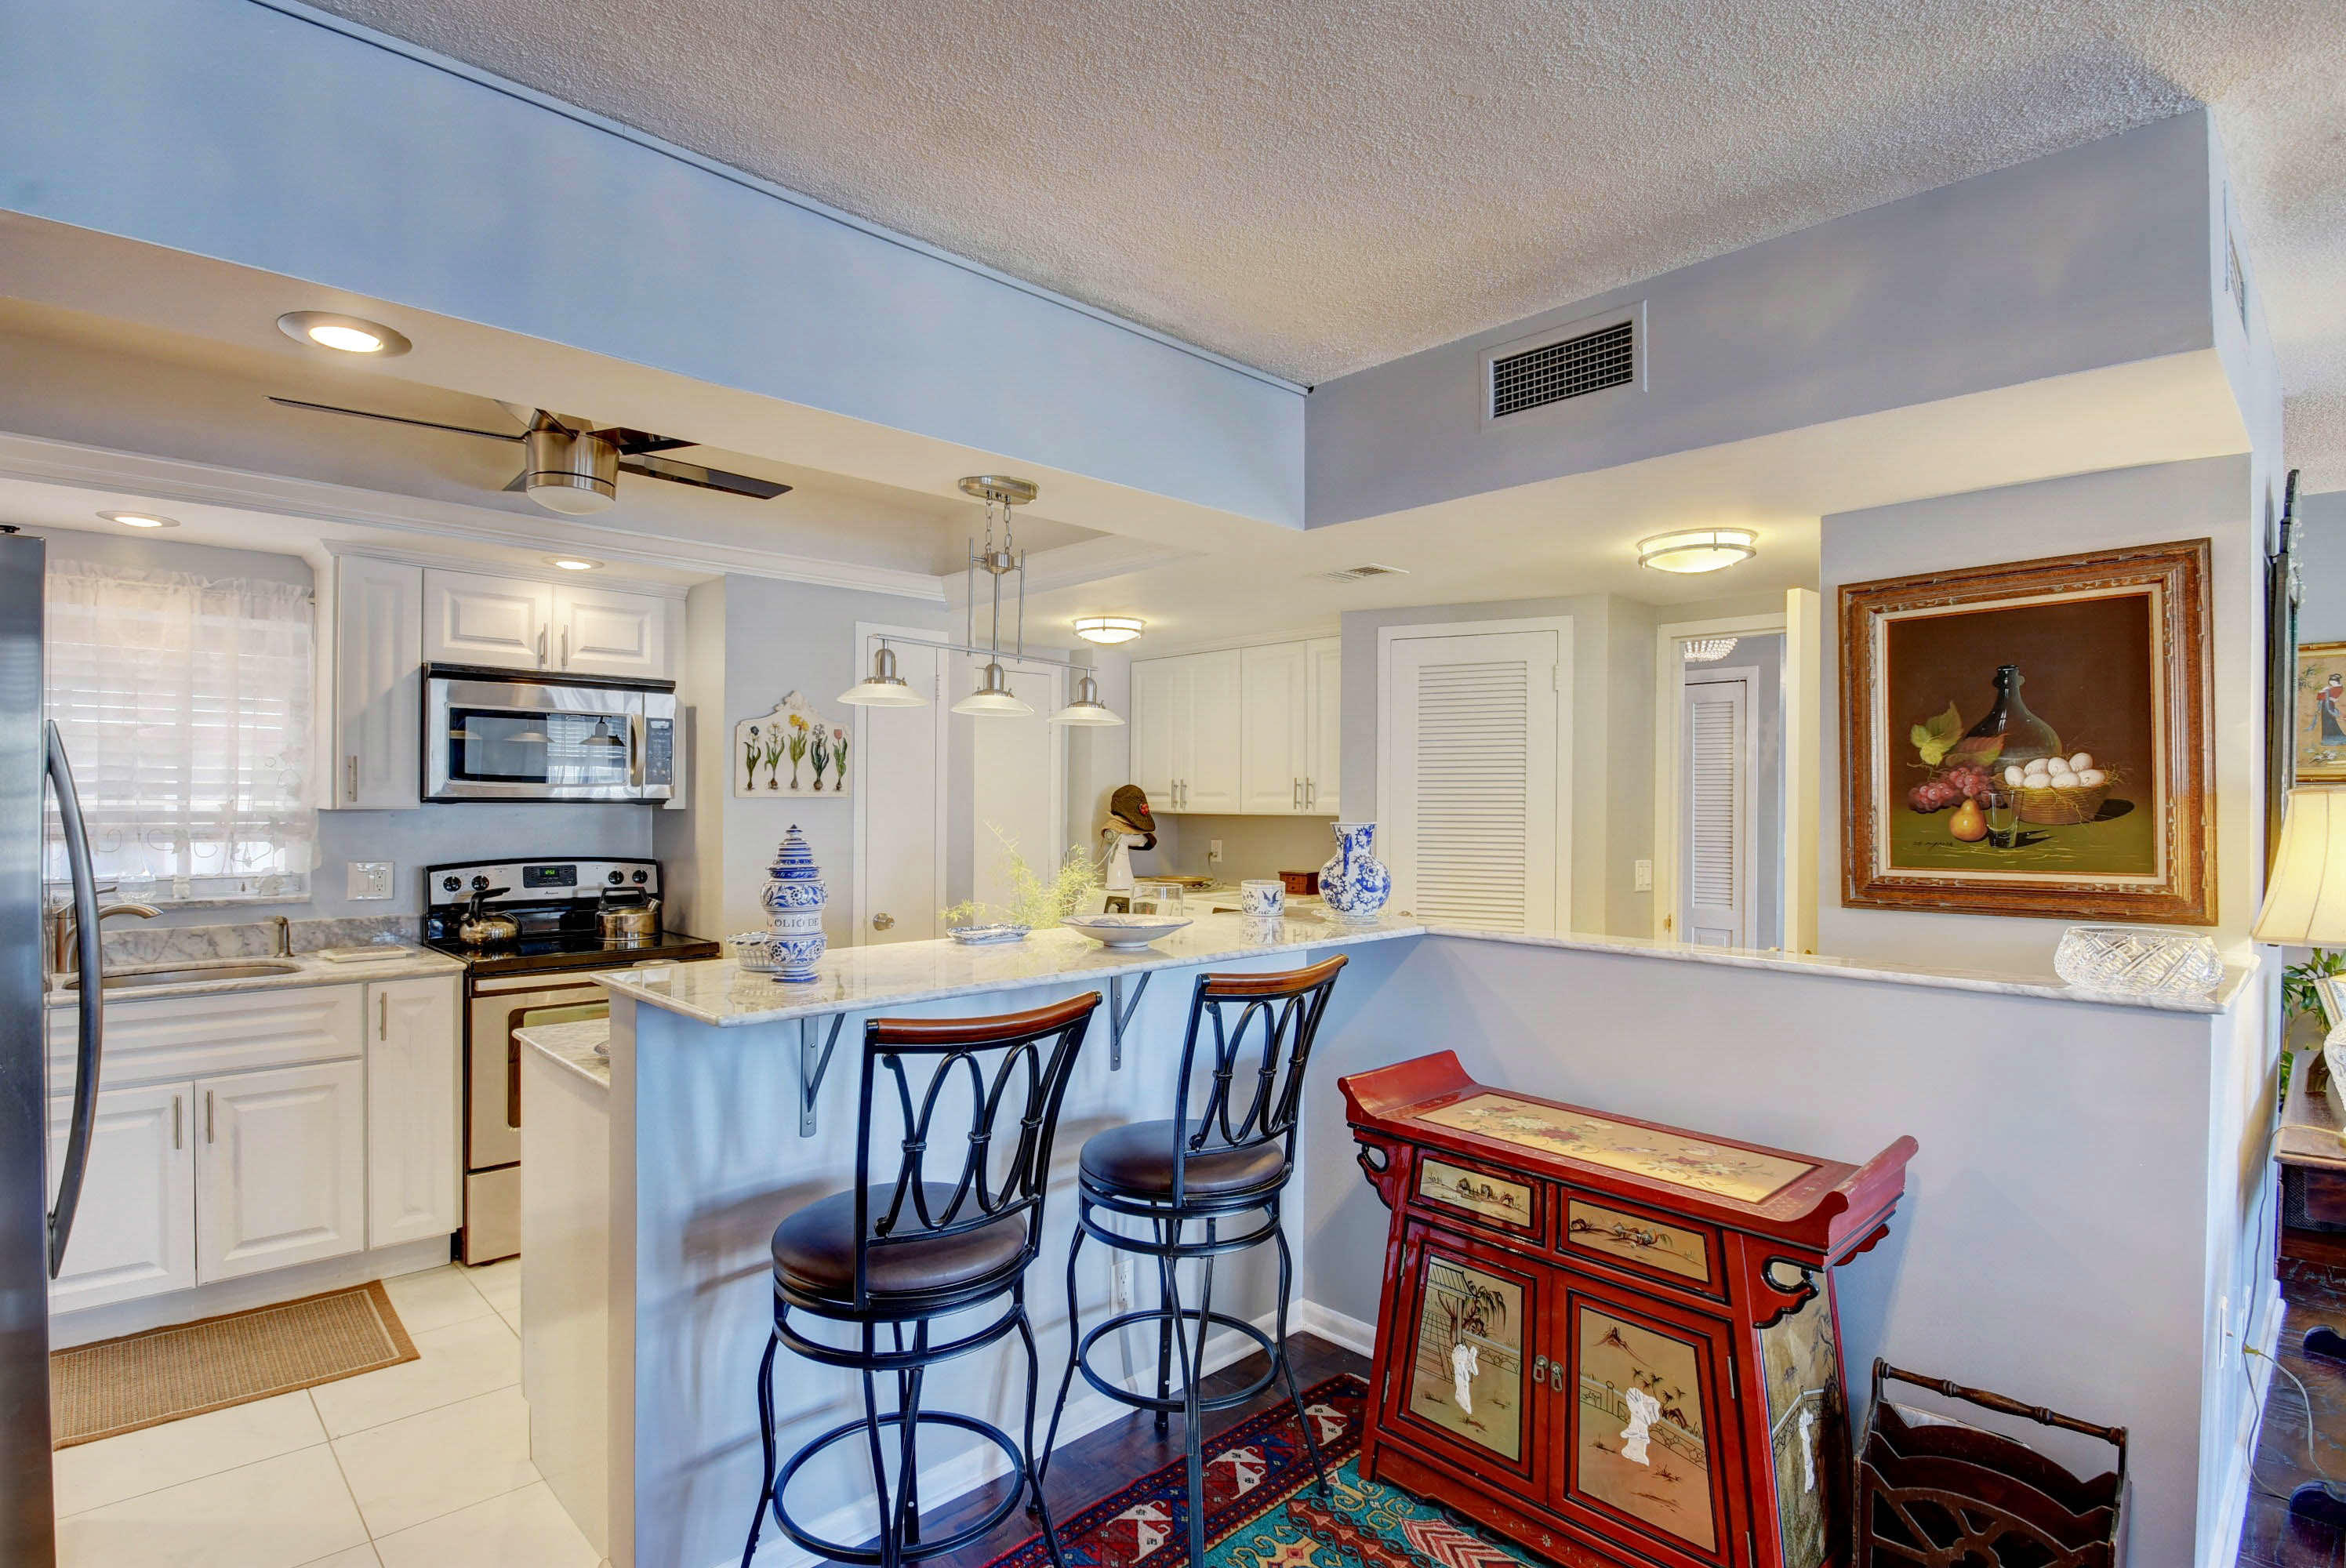 3475 Ocean Boulevard, Palm Beach, Florida 33480, 2 Bedrooms Bedrooms, ,2 BathroomsBathrooms,Condo/Coop,For Sale,Ocean,6,RX-10473905